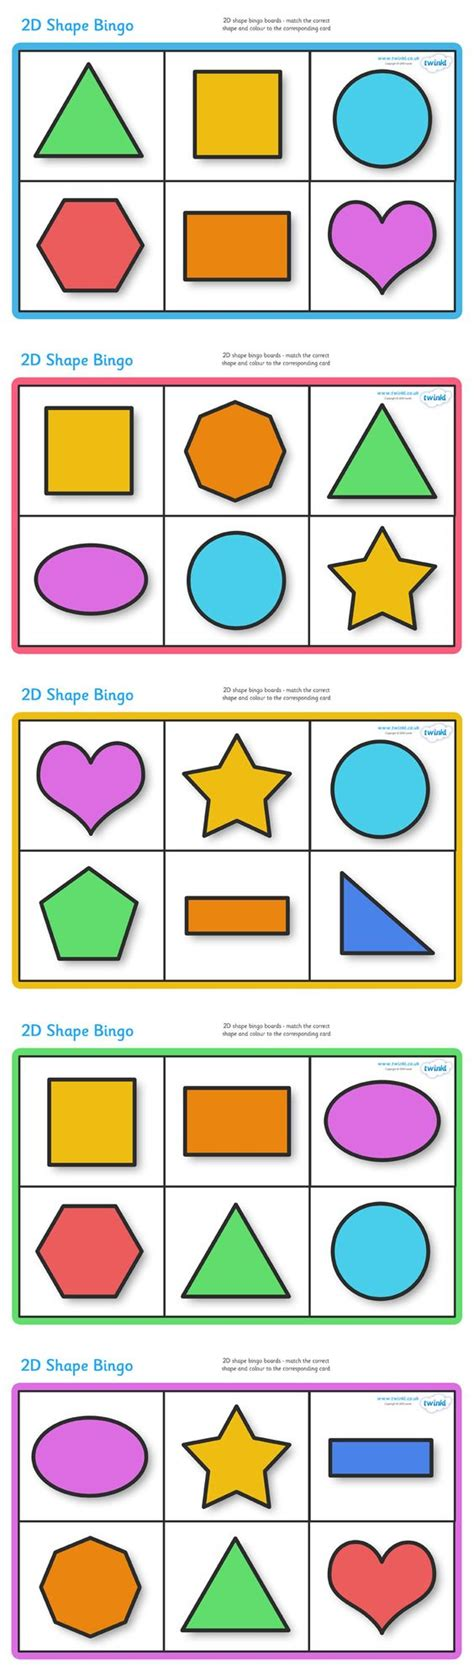 printable games classroom twinkl resources gt gt 2d shape bingo gt gt classroom printables